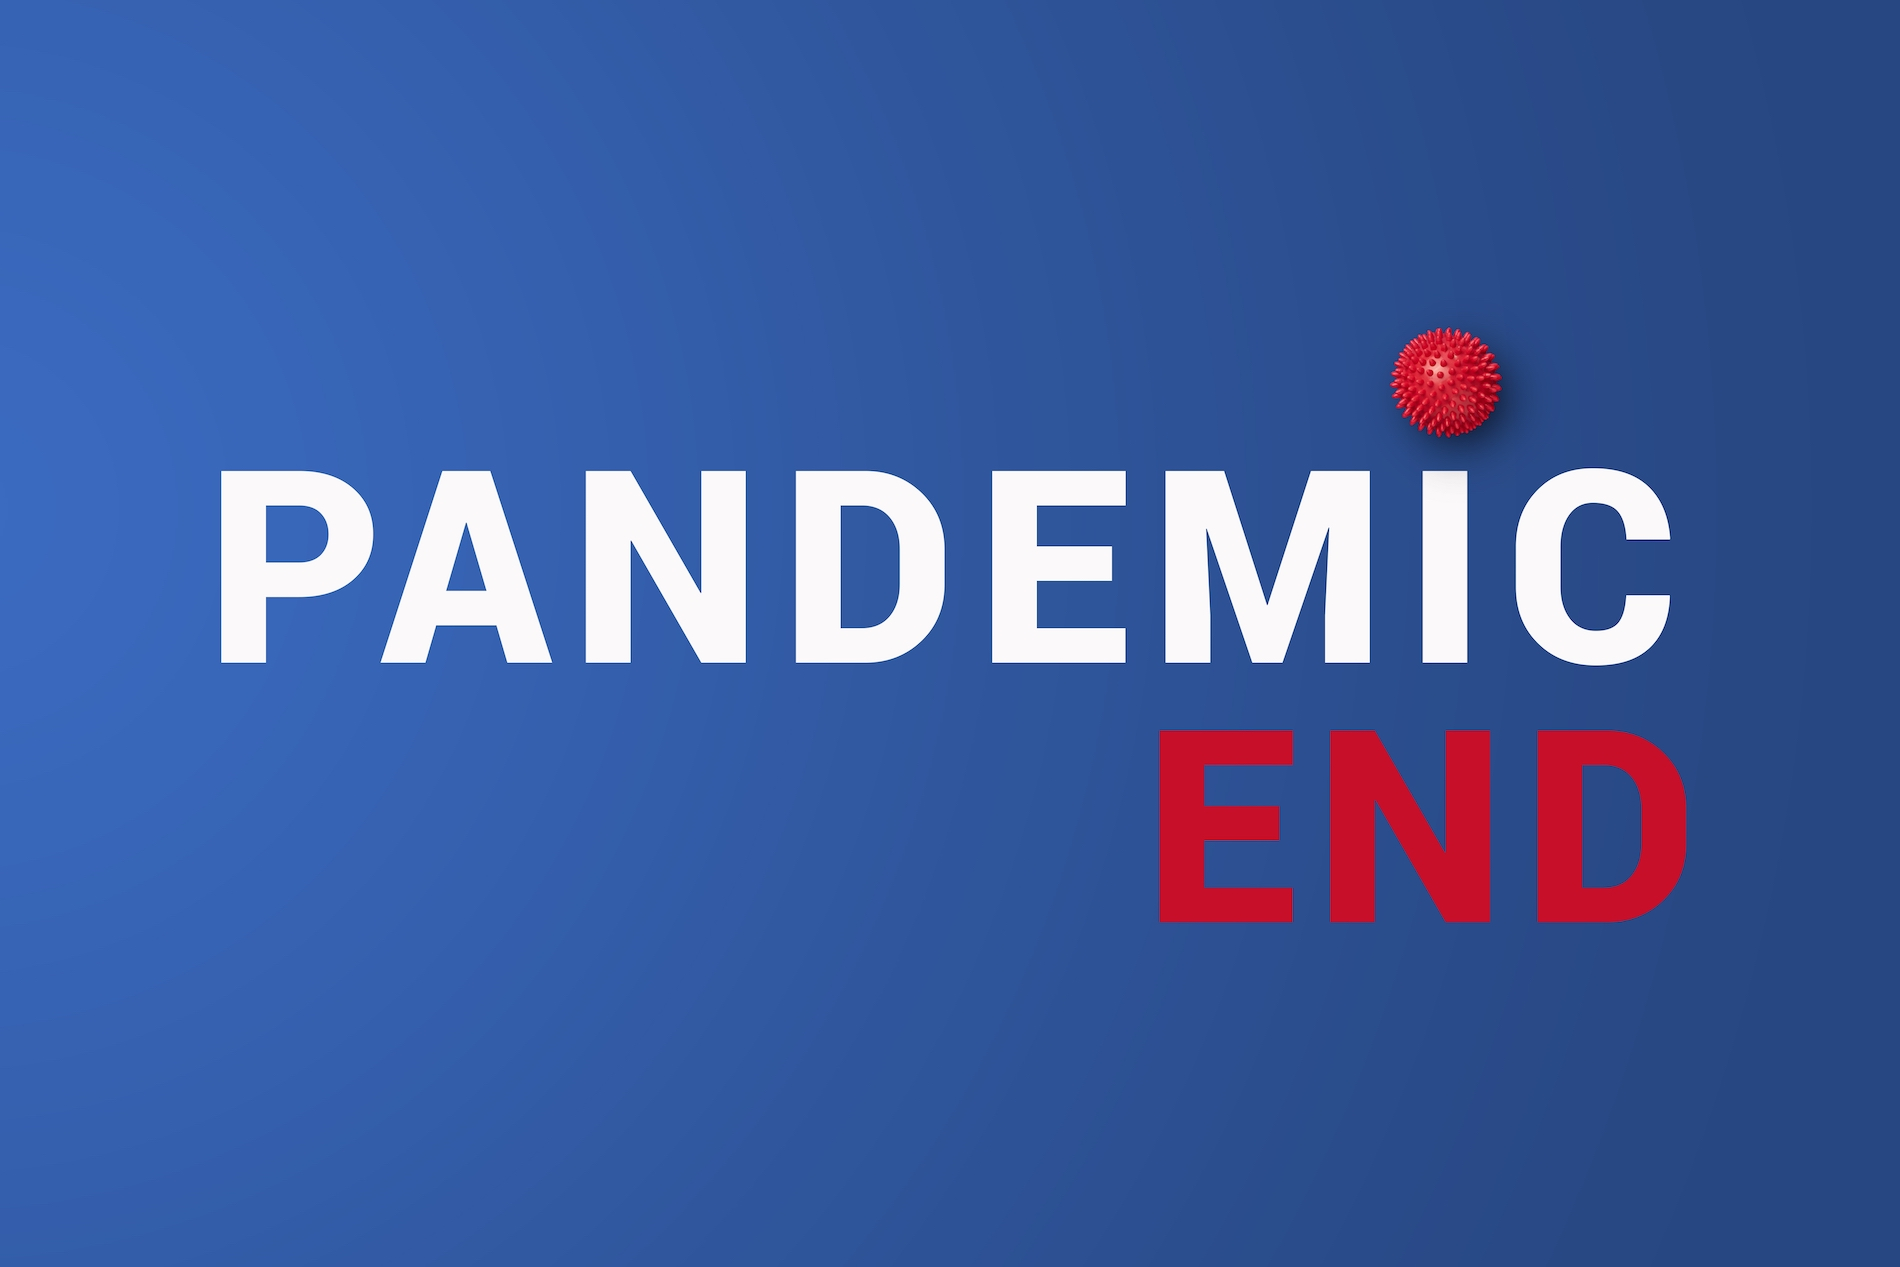 Global financing, health and trade agencies unite to initiate an end to the pandemic